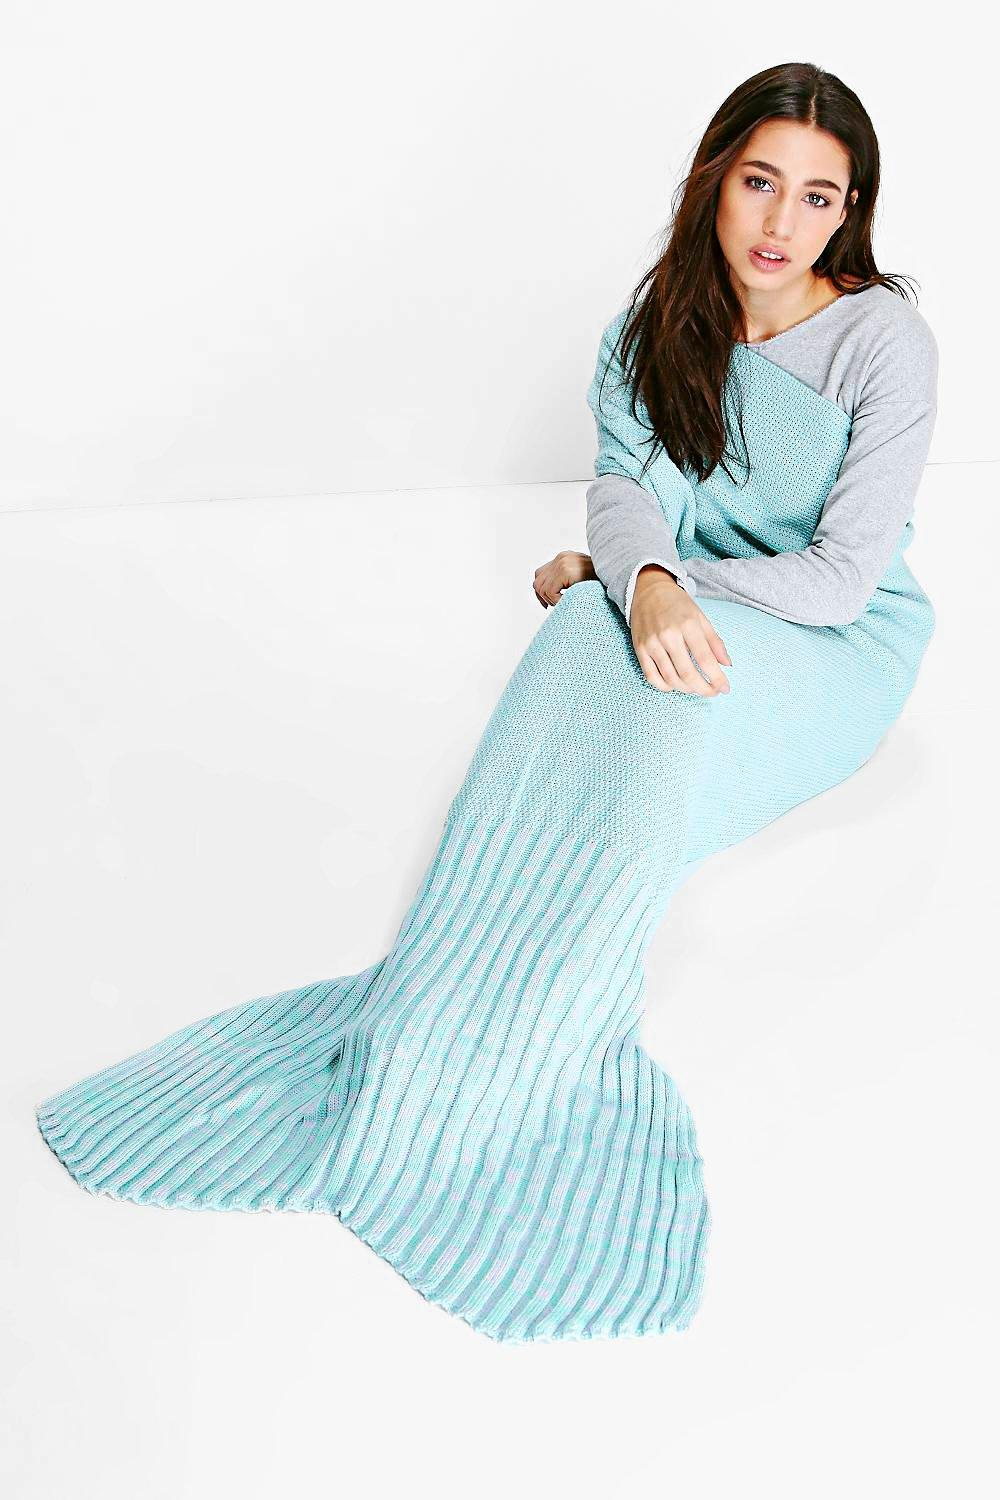 Mint and Lilac Knitted Mermaid Tail Blanket